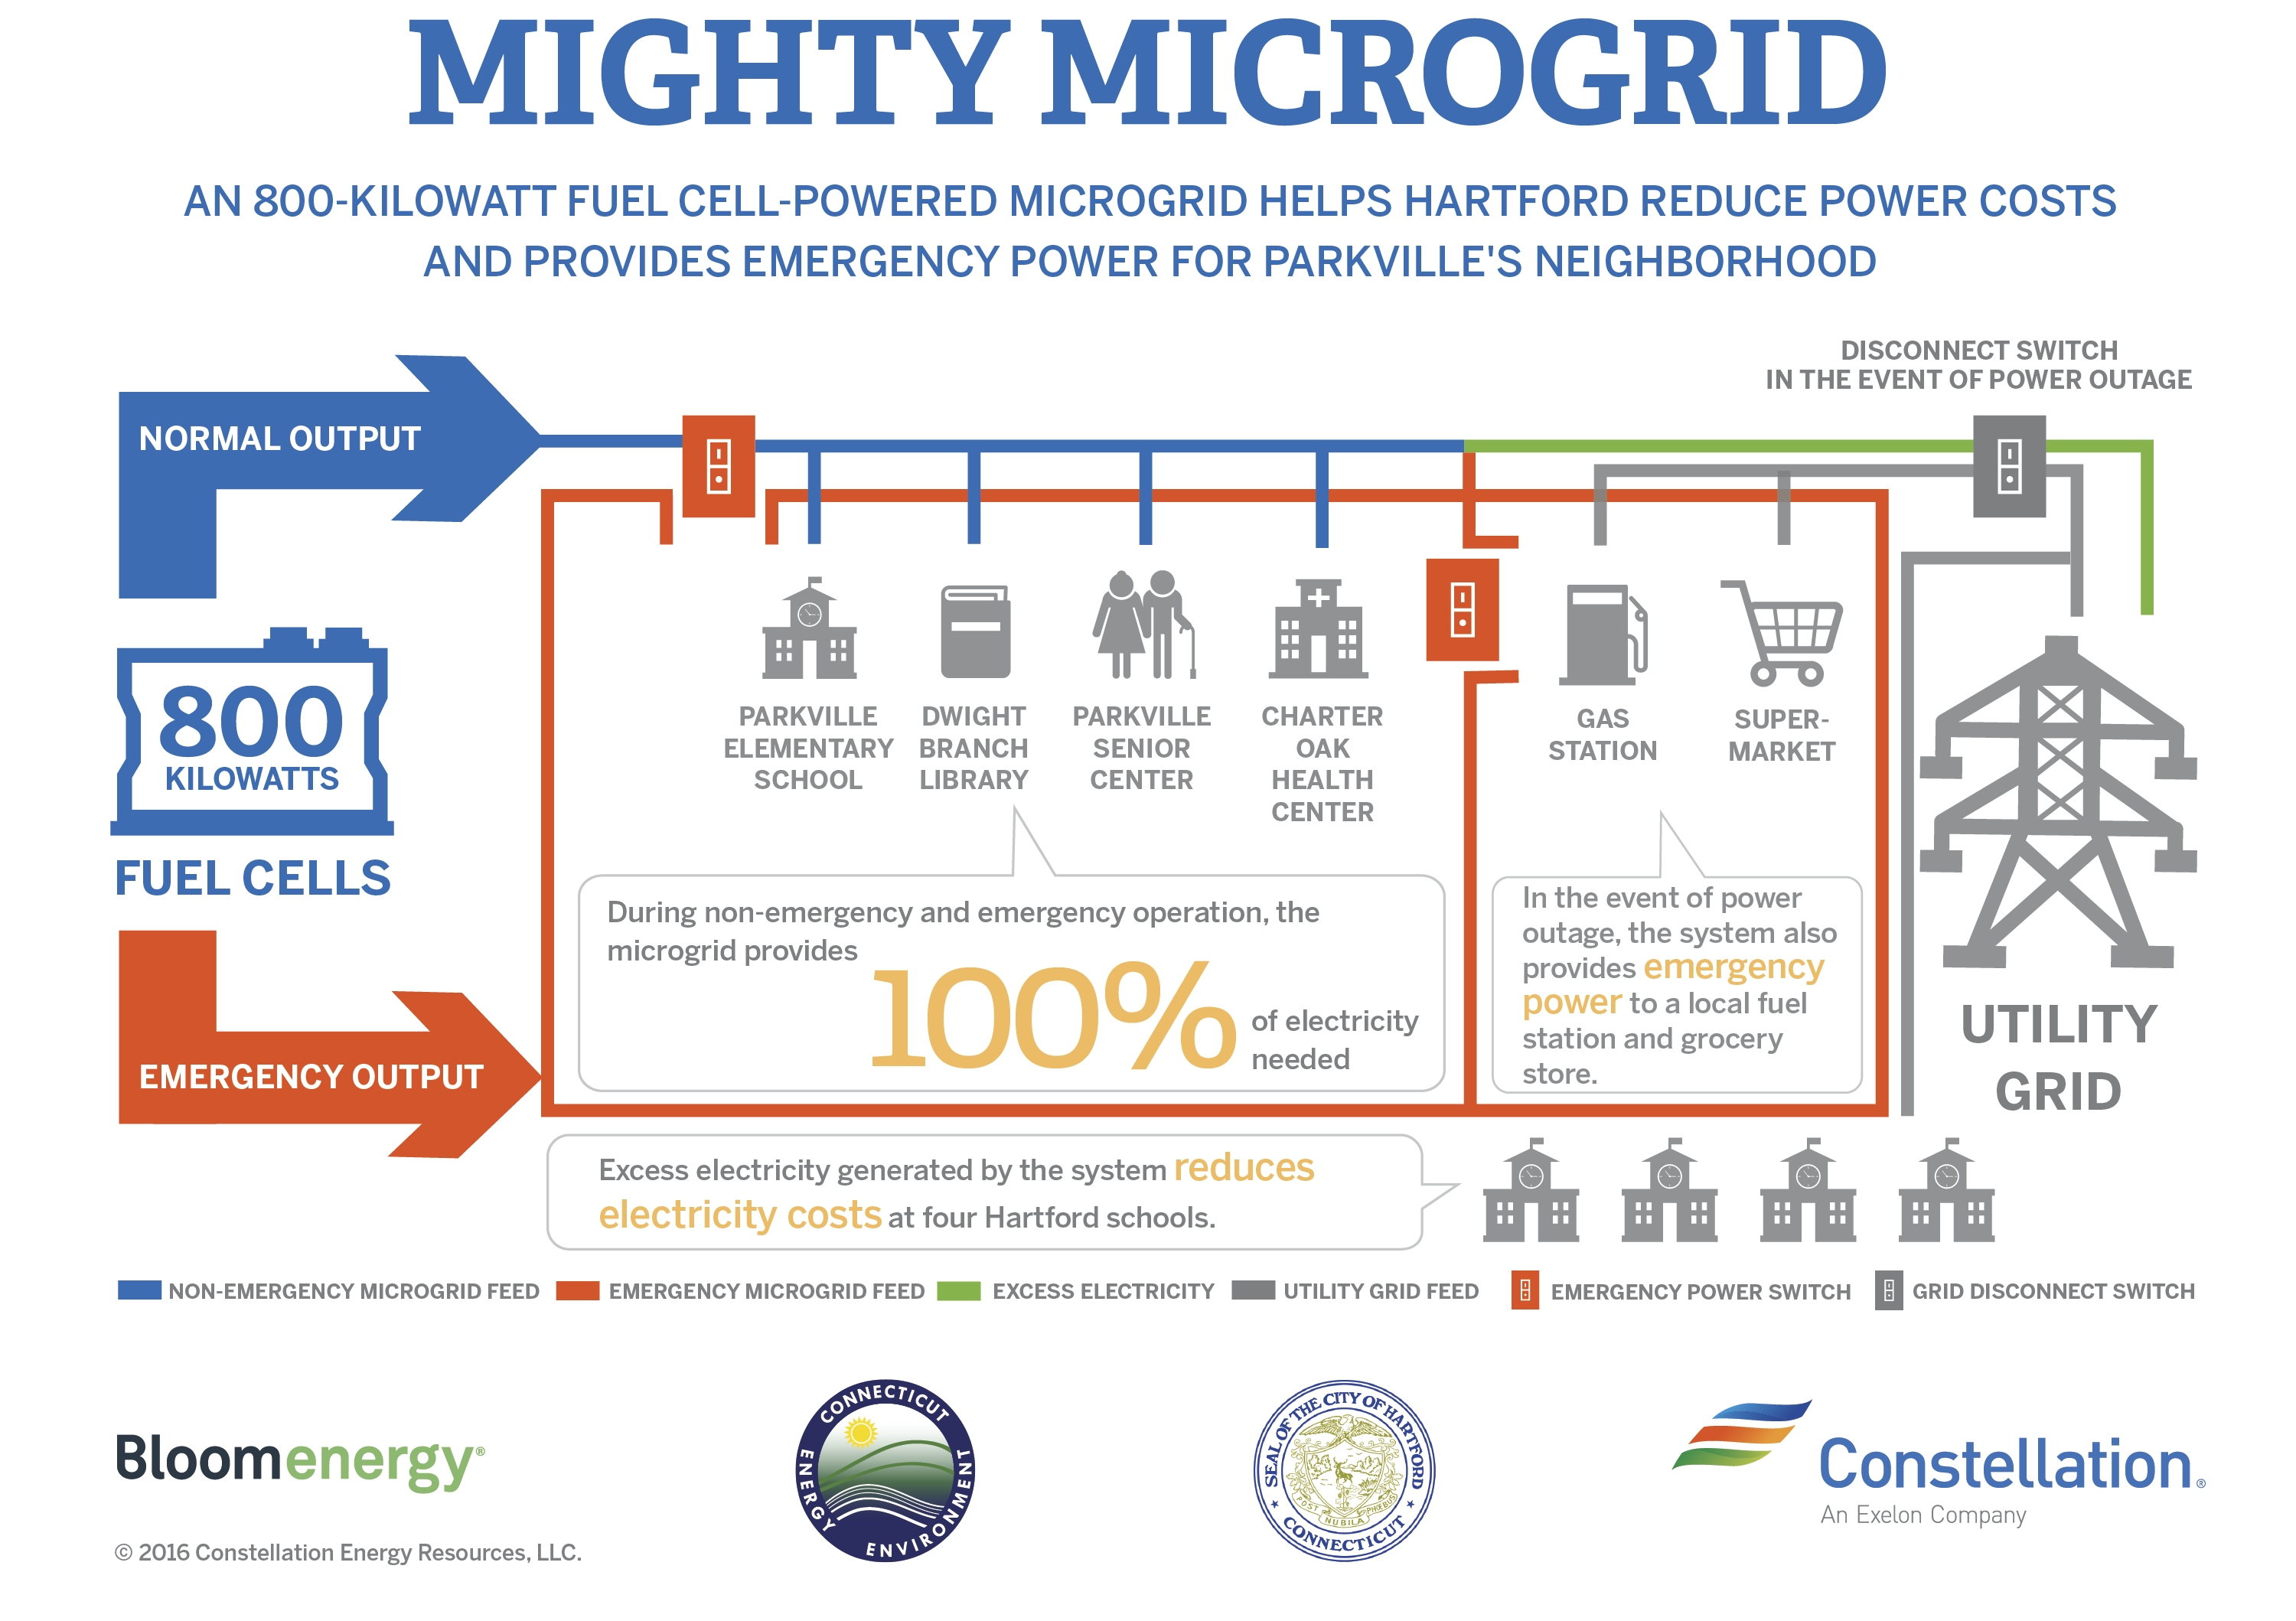 hartford fuel cell microgrid